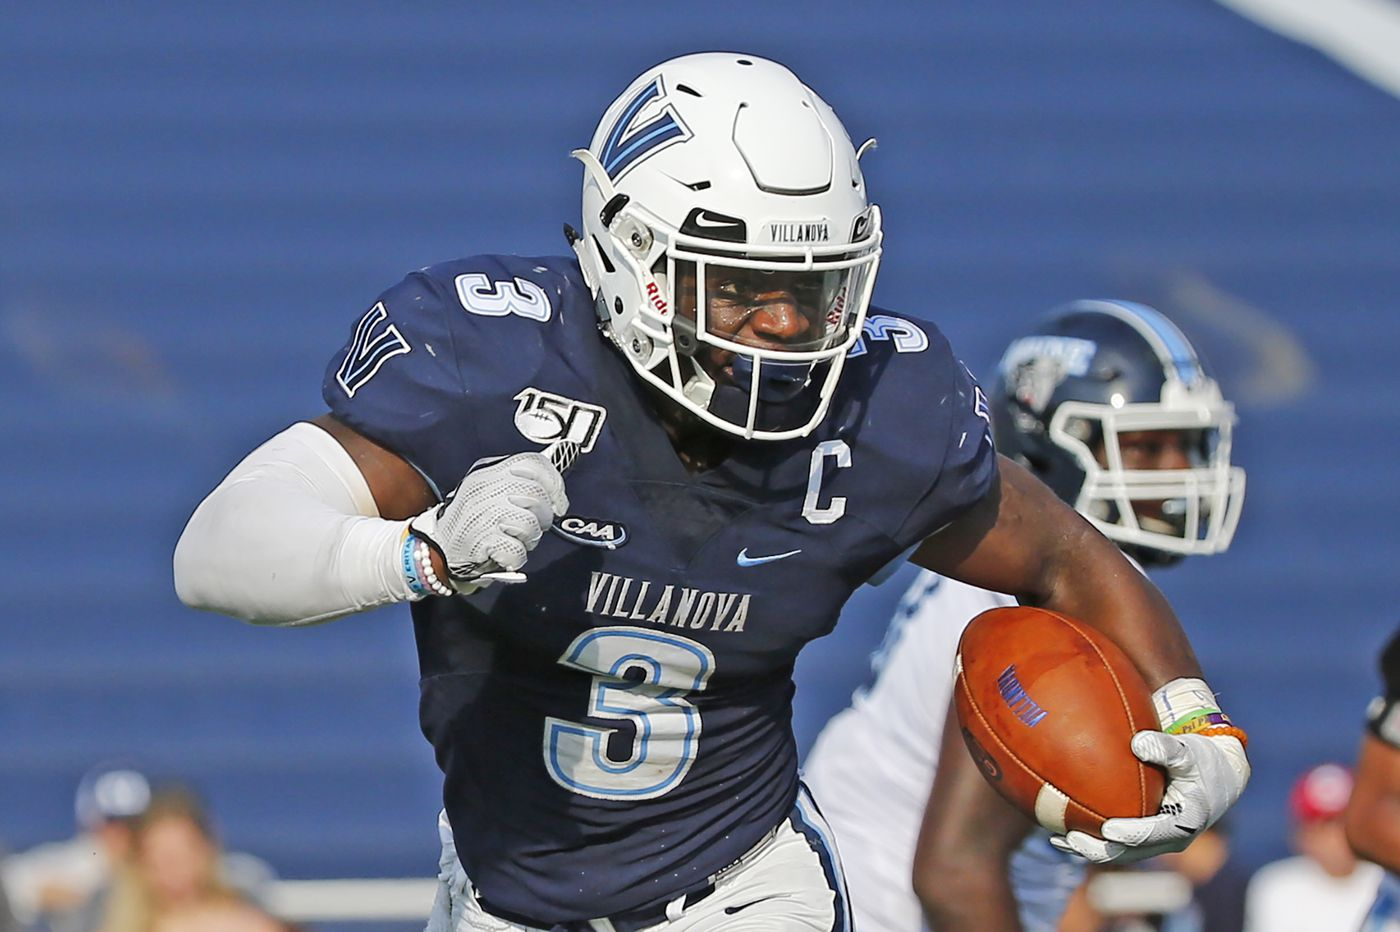 Resilient Villanova football team to face James Madison in toughest task yet